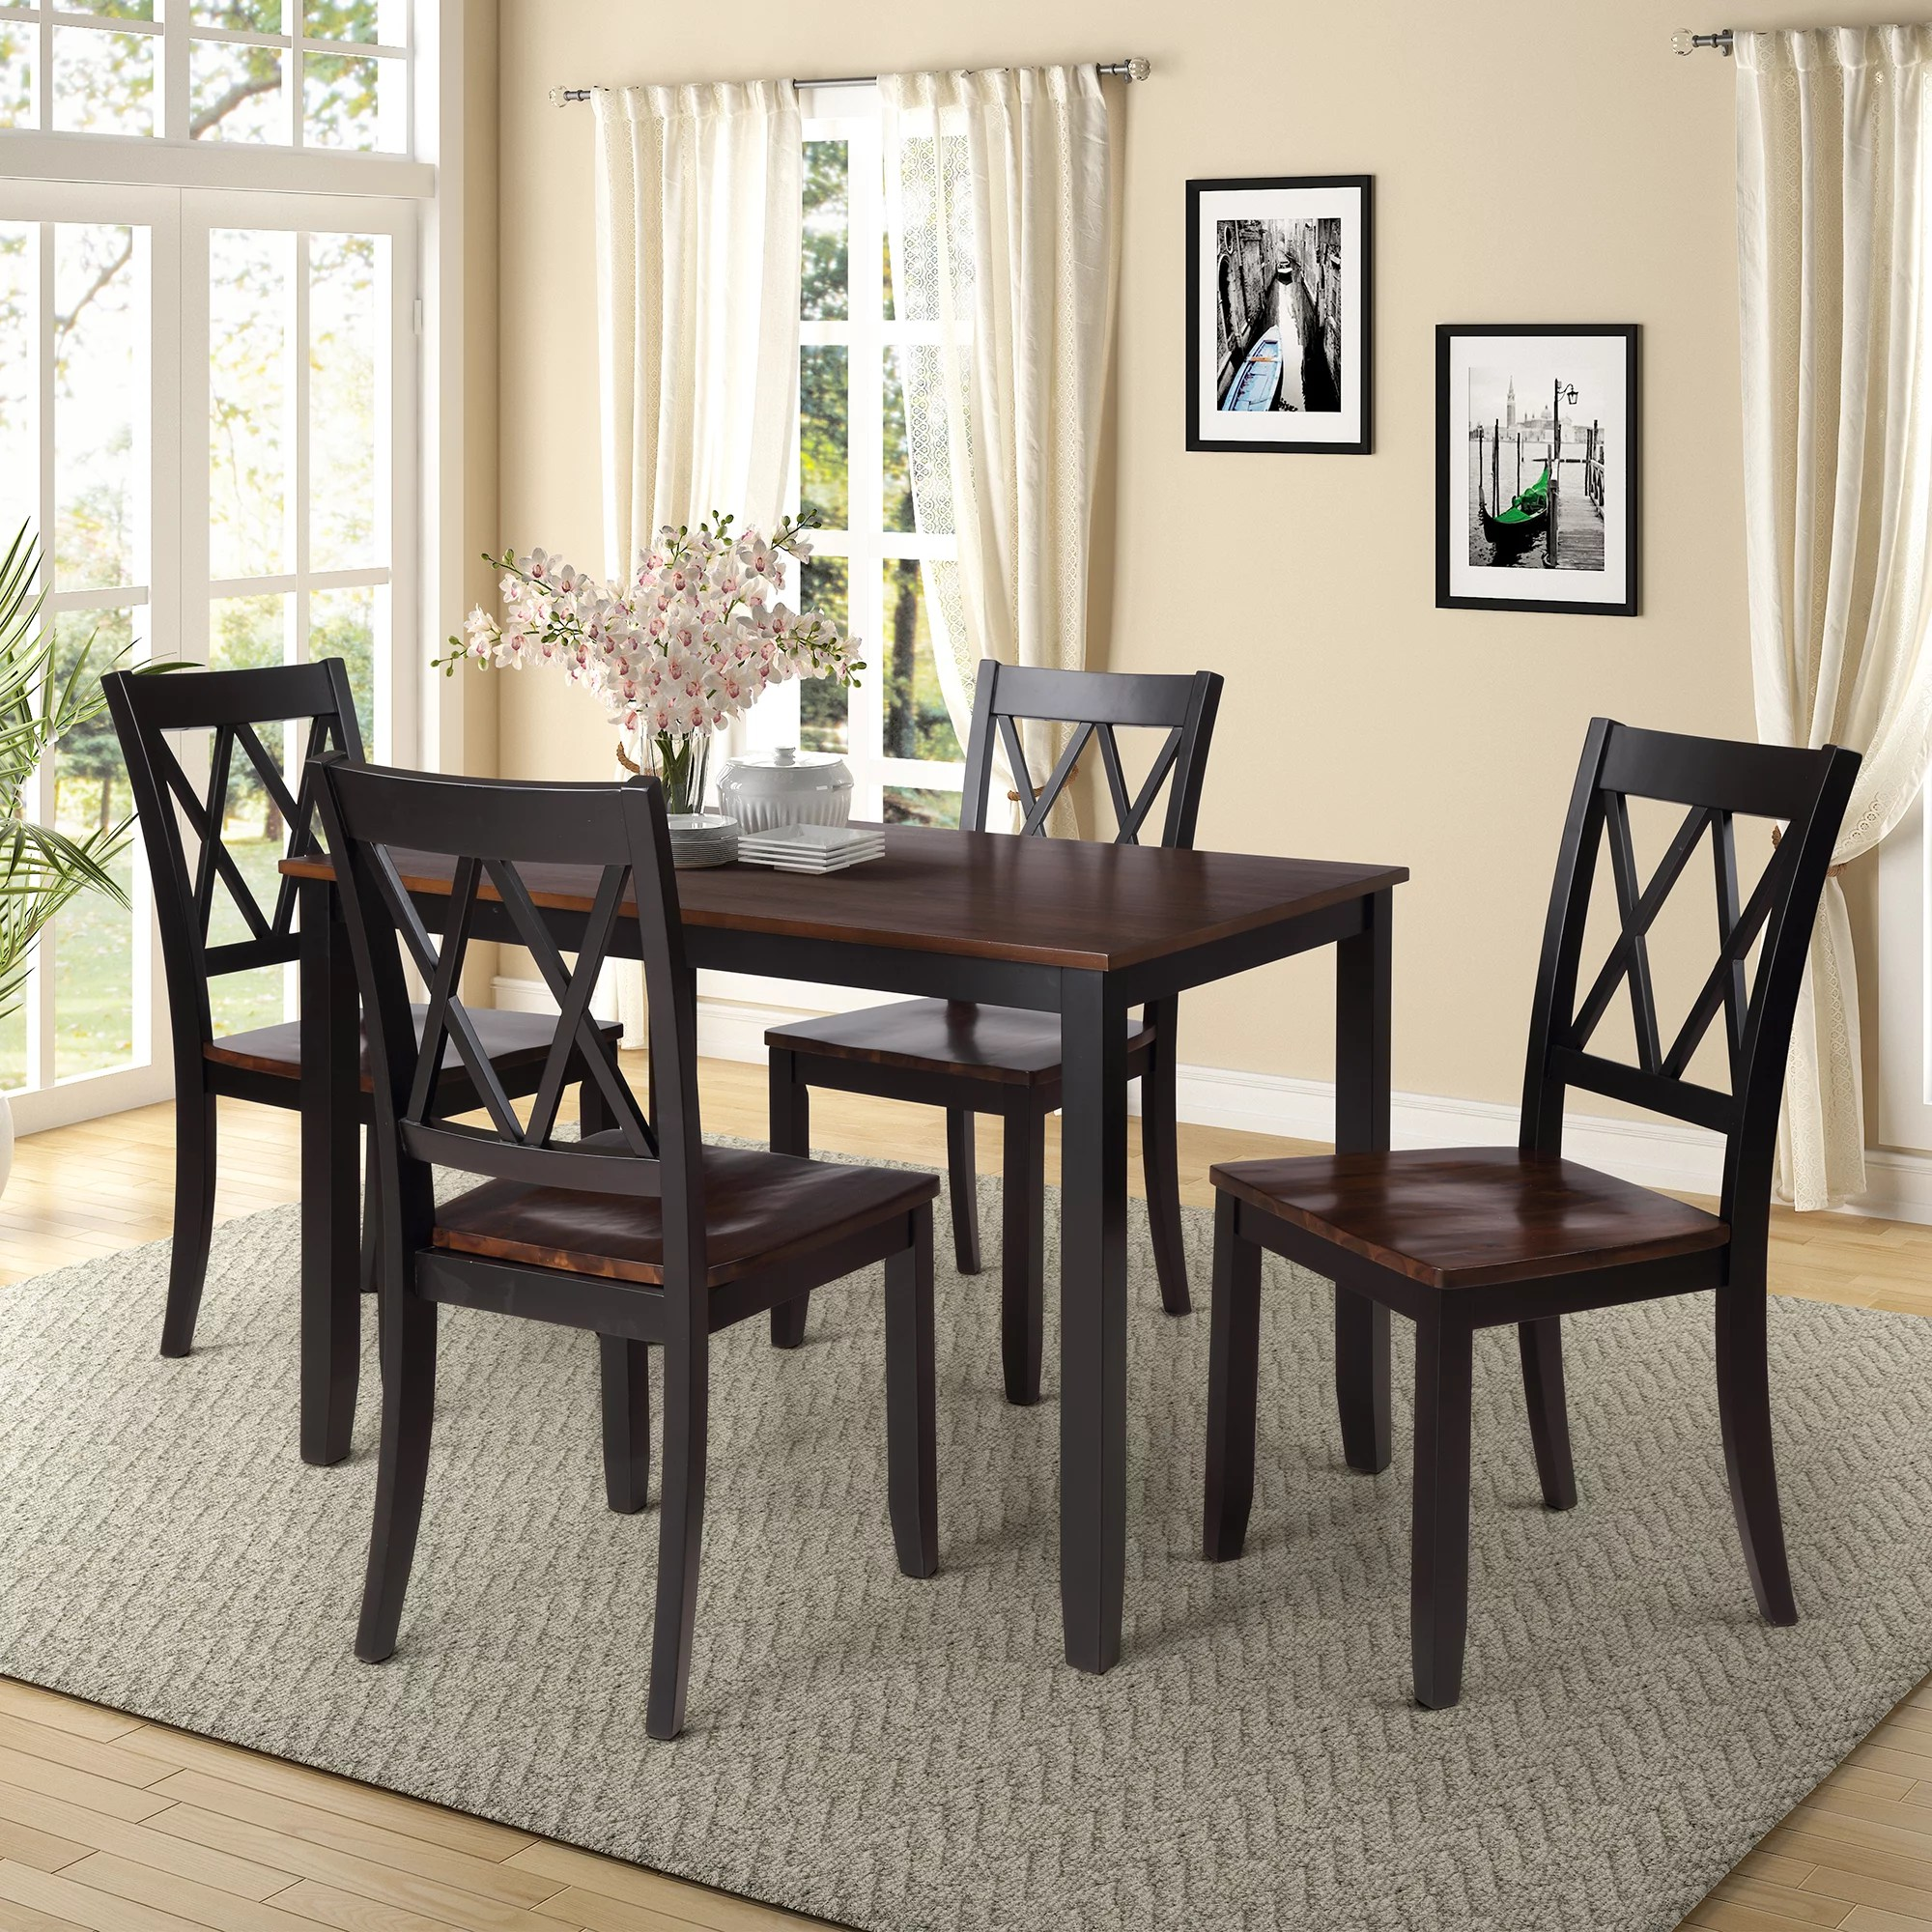 clearance black dining table set for 4 modern 5 piece on dining room sets on clearance id=68826